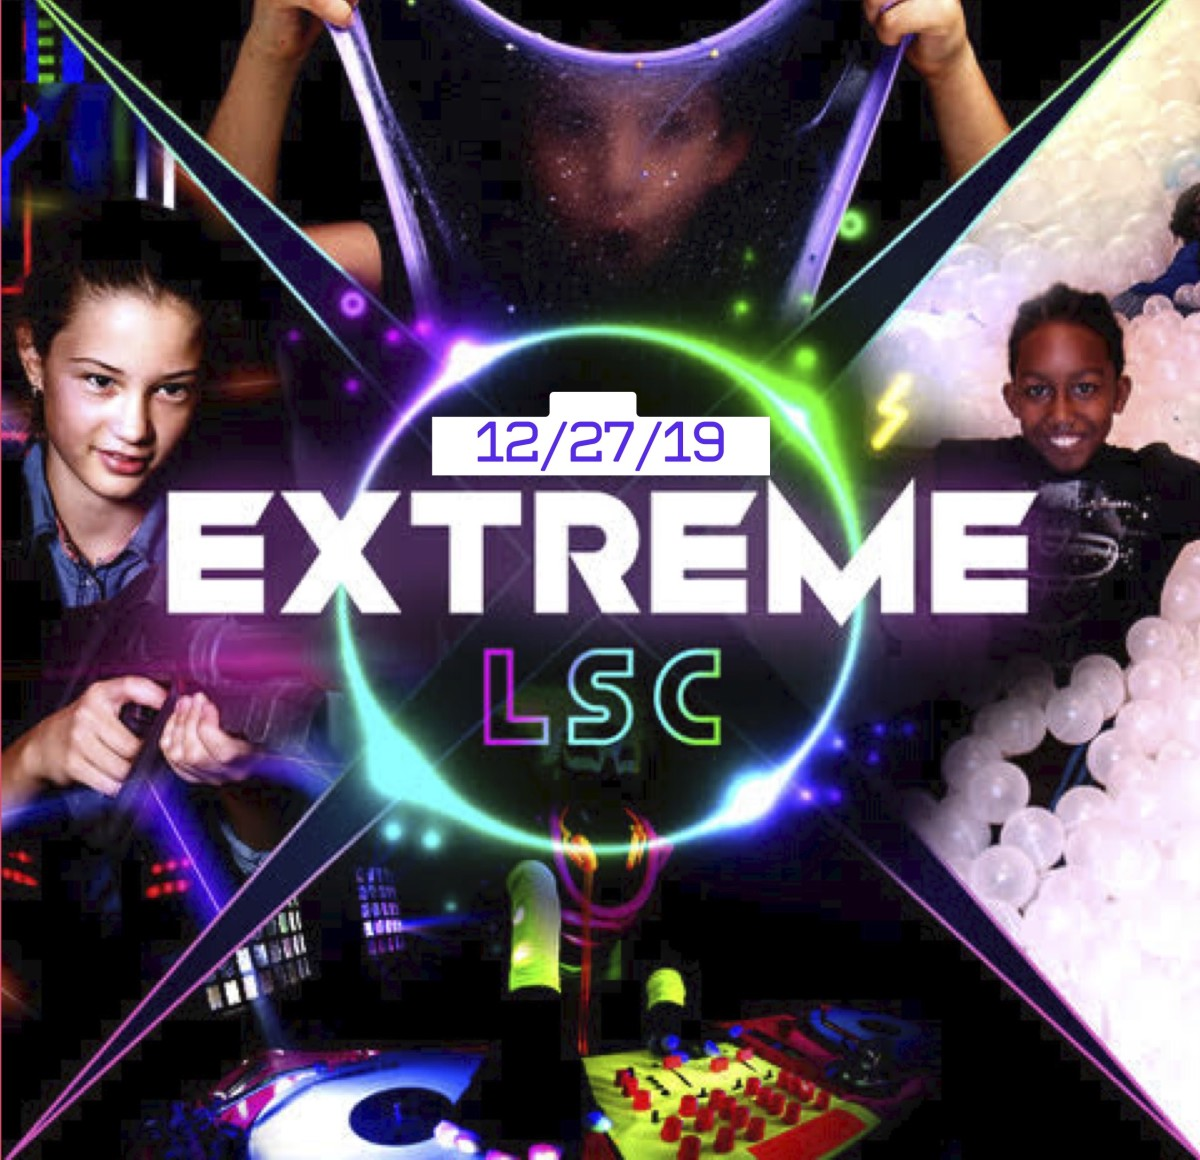 Extreme Fun takes over at Liberty Science Center #ExtremeLSC